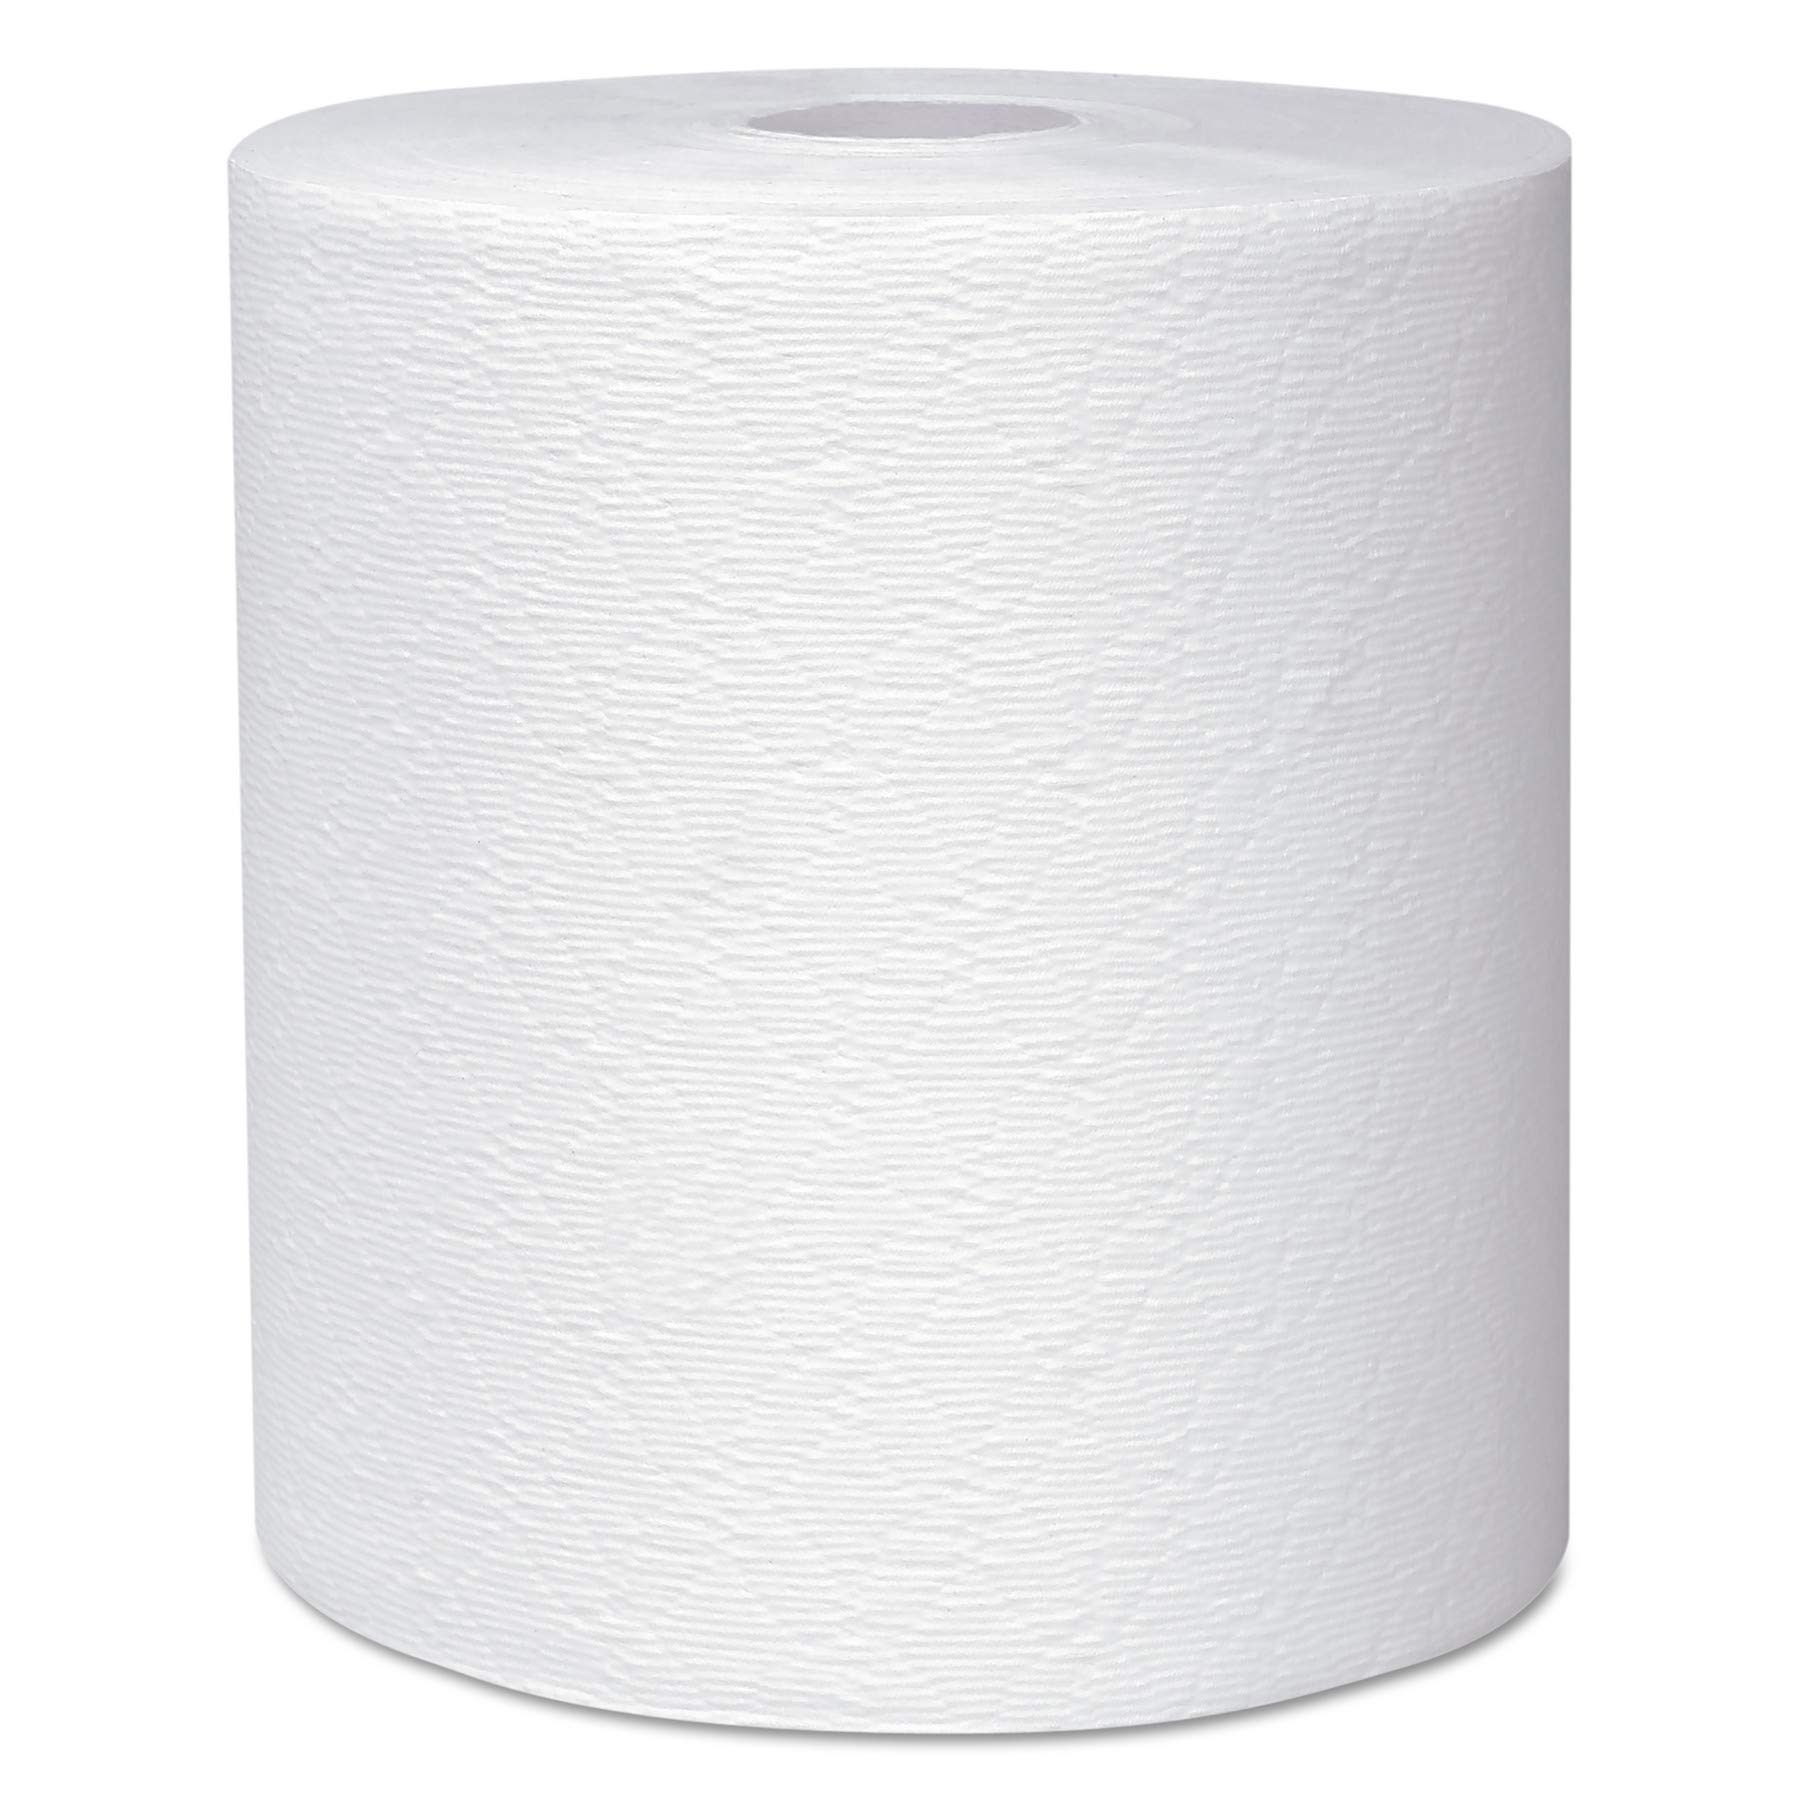 Scott 50606 Essential Plus Hard Roll Towels 8'' x 600 ft, 1 3/4'' Core dia, White (Case of 6 Rolls)